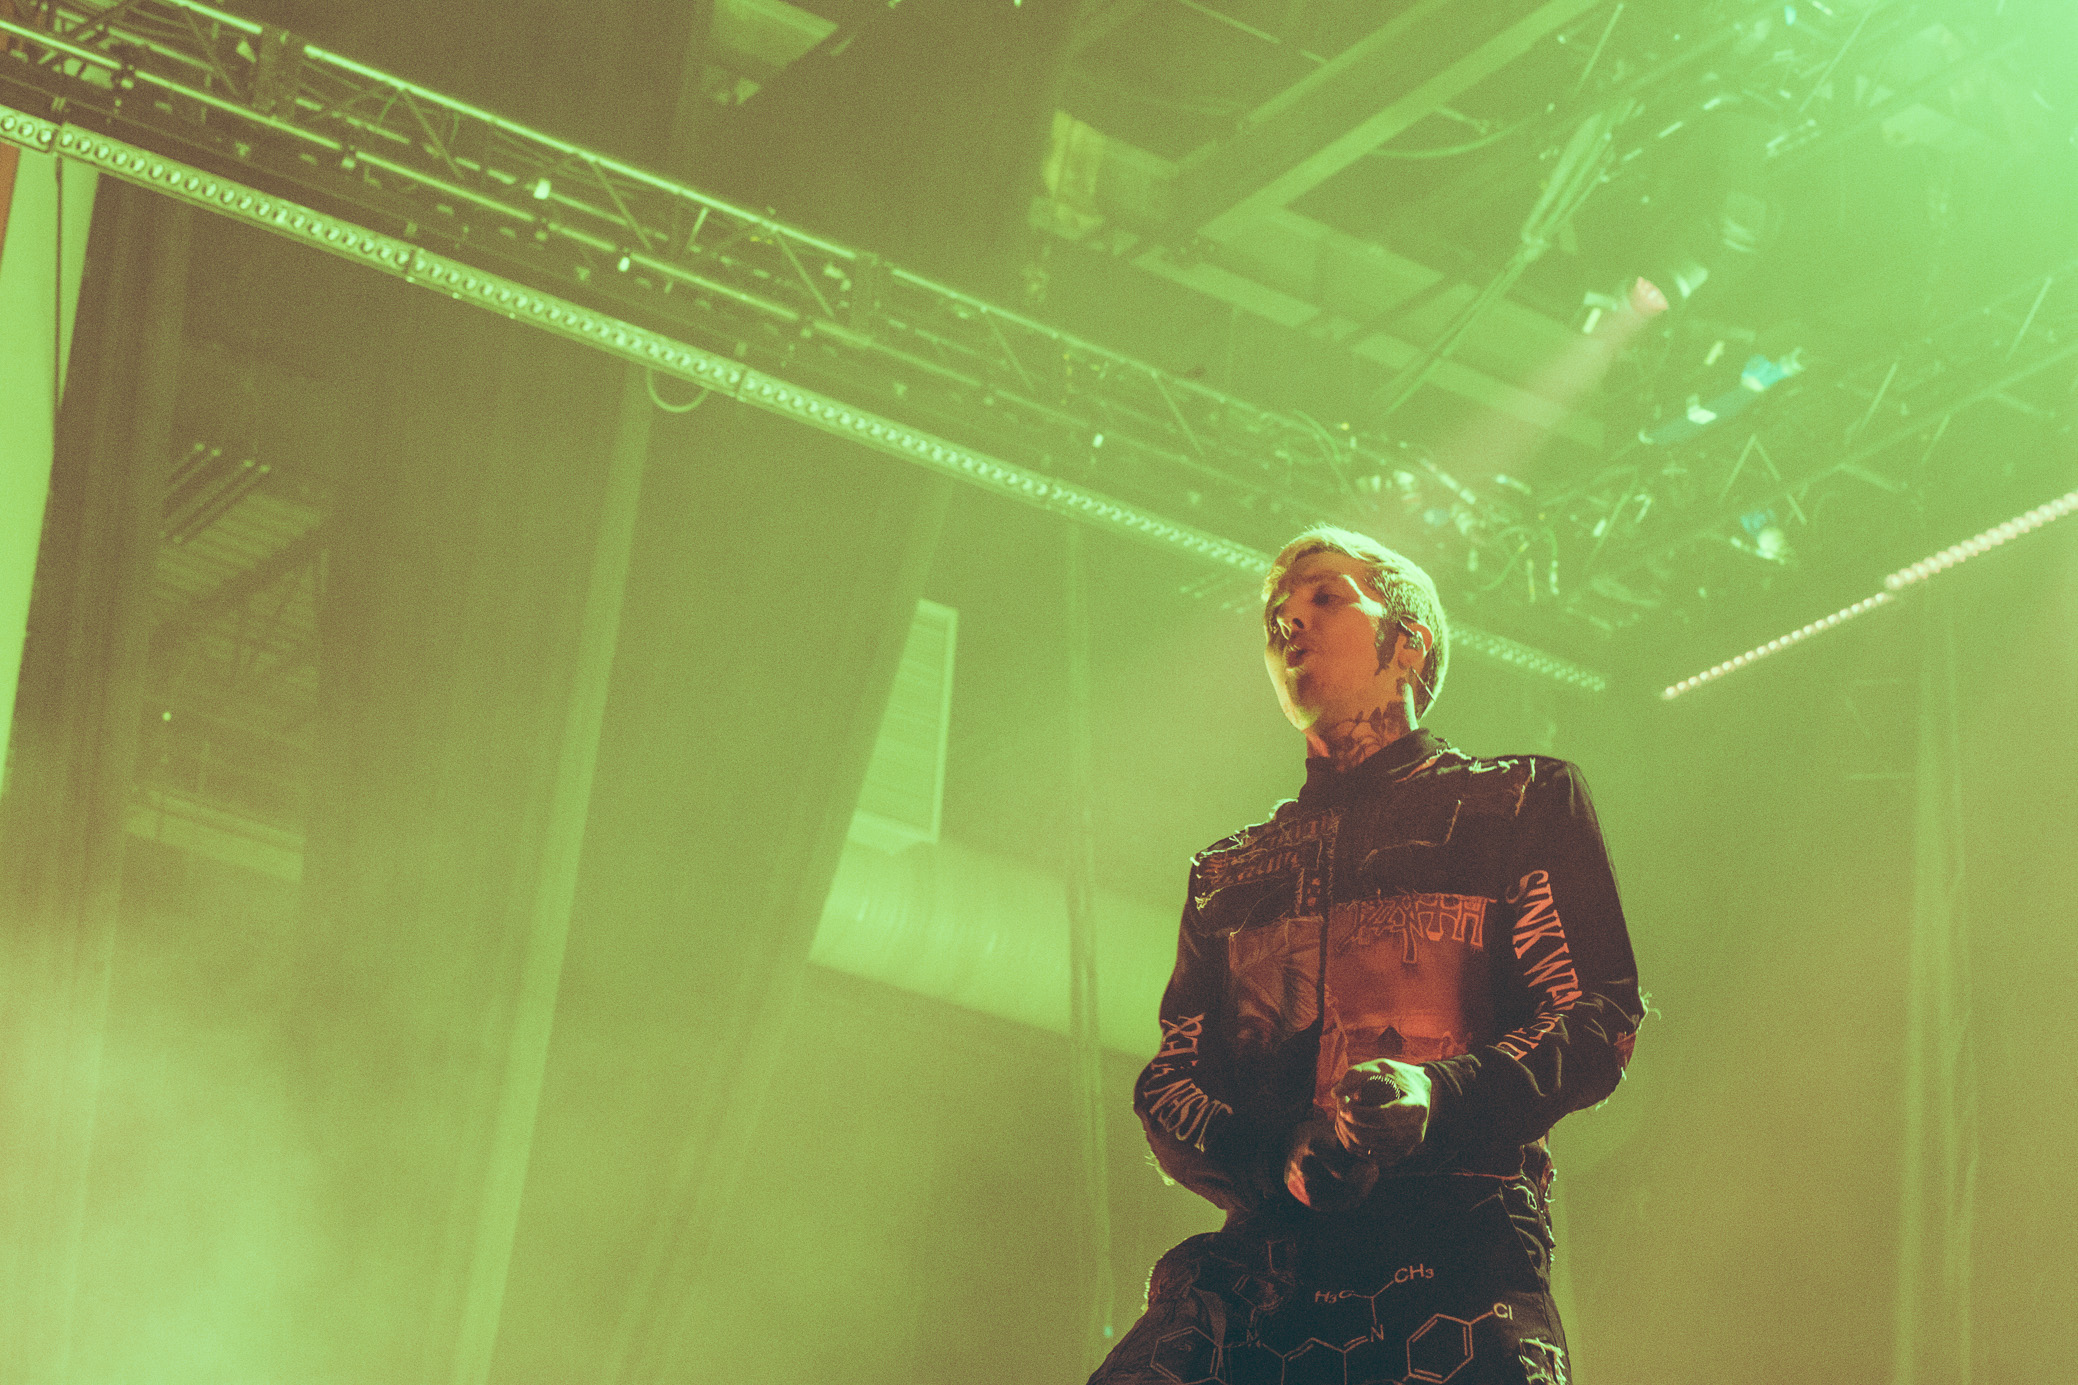 Bring Me The Horizon performs at The Coca-Cola Roxy in Atlanta, Georgia on January 26th, 2019. (Photo by David A. Smith / DSmithScenes)